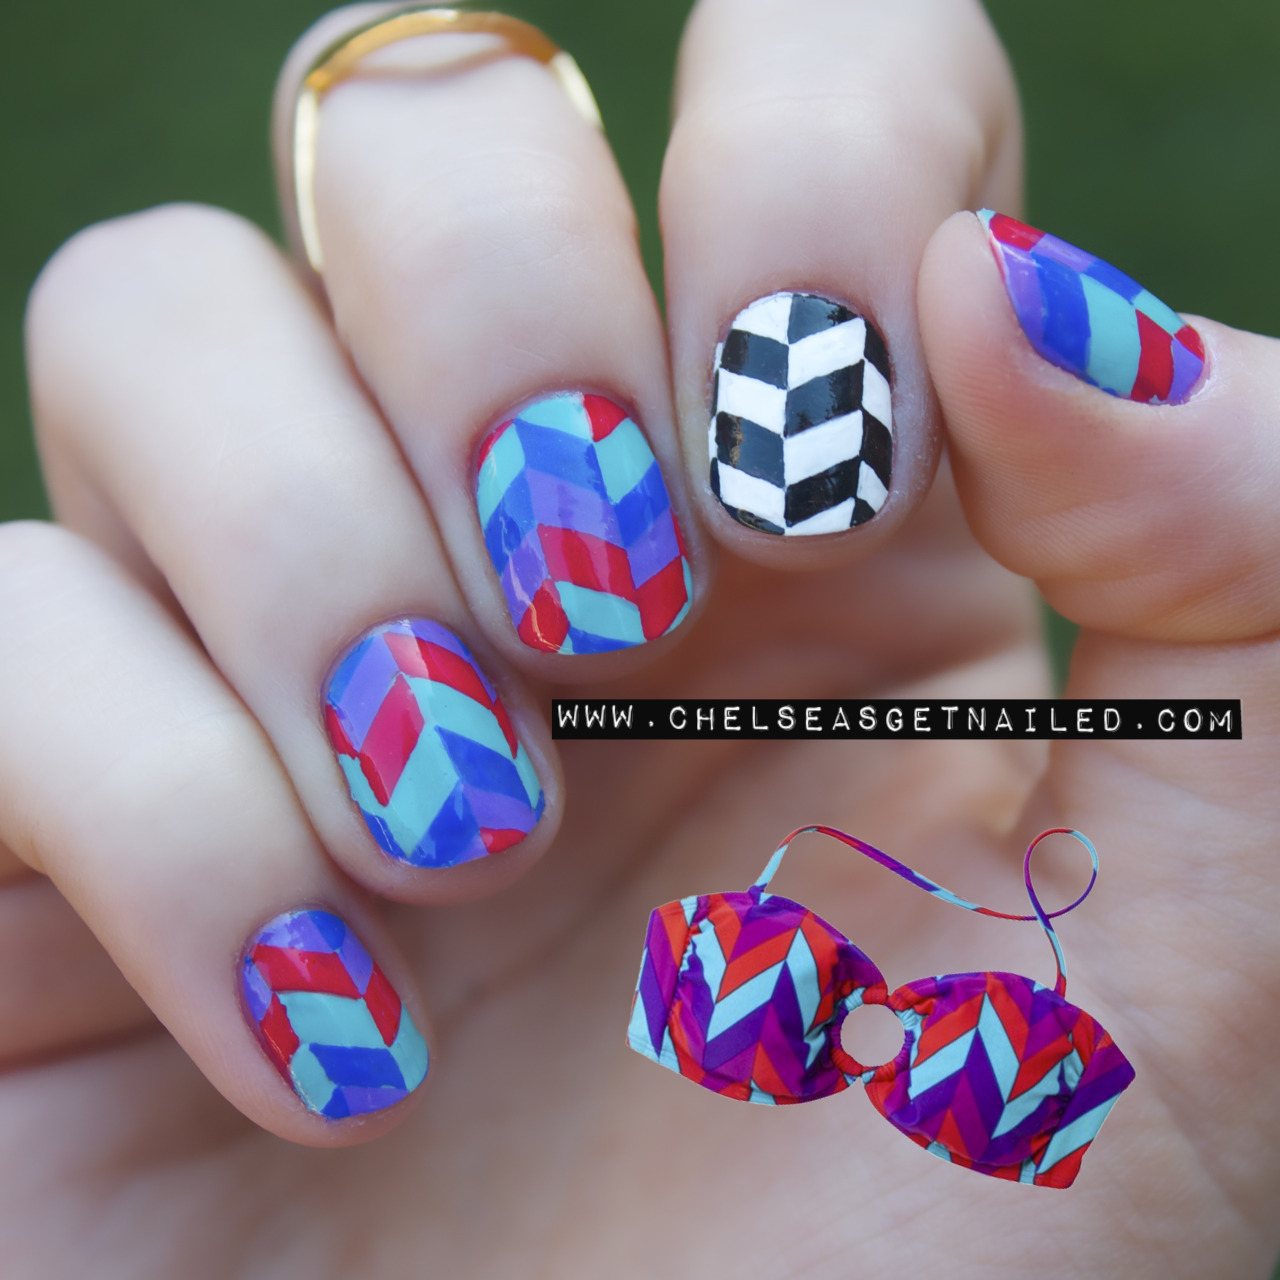 Target bathing suit inspired nails! http://chelseasgetnailed.com/target-bathing-suit-inspired/